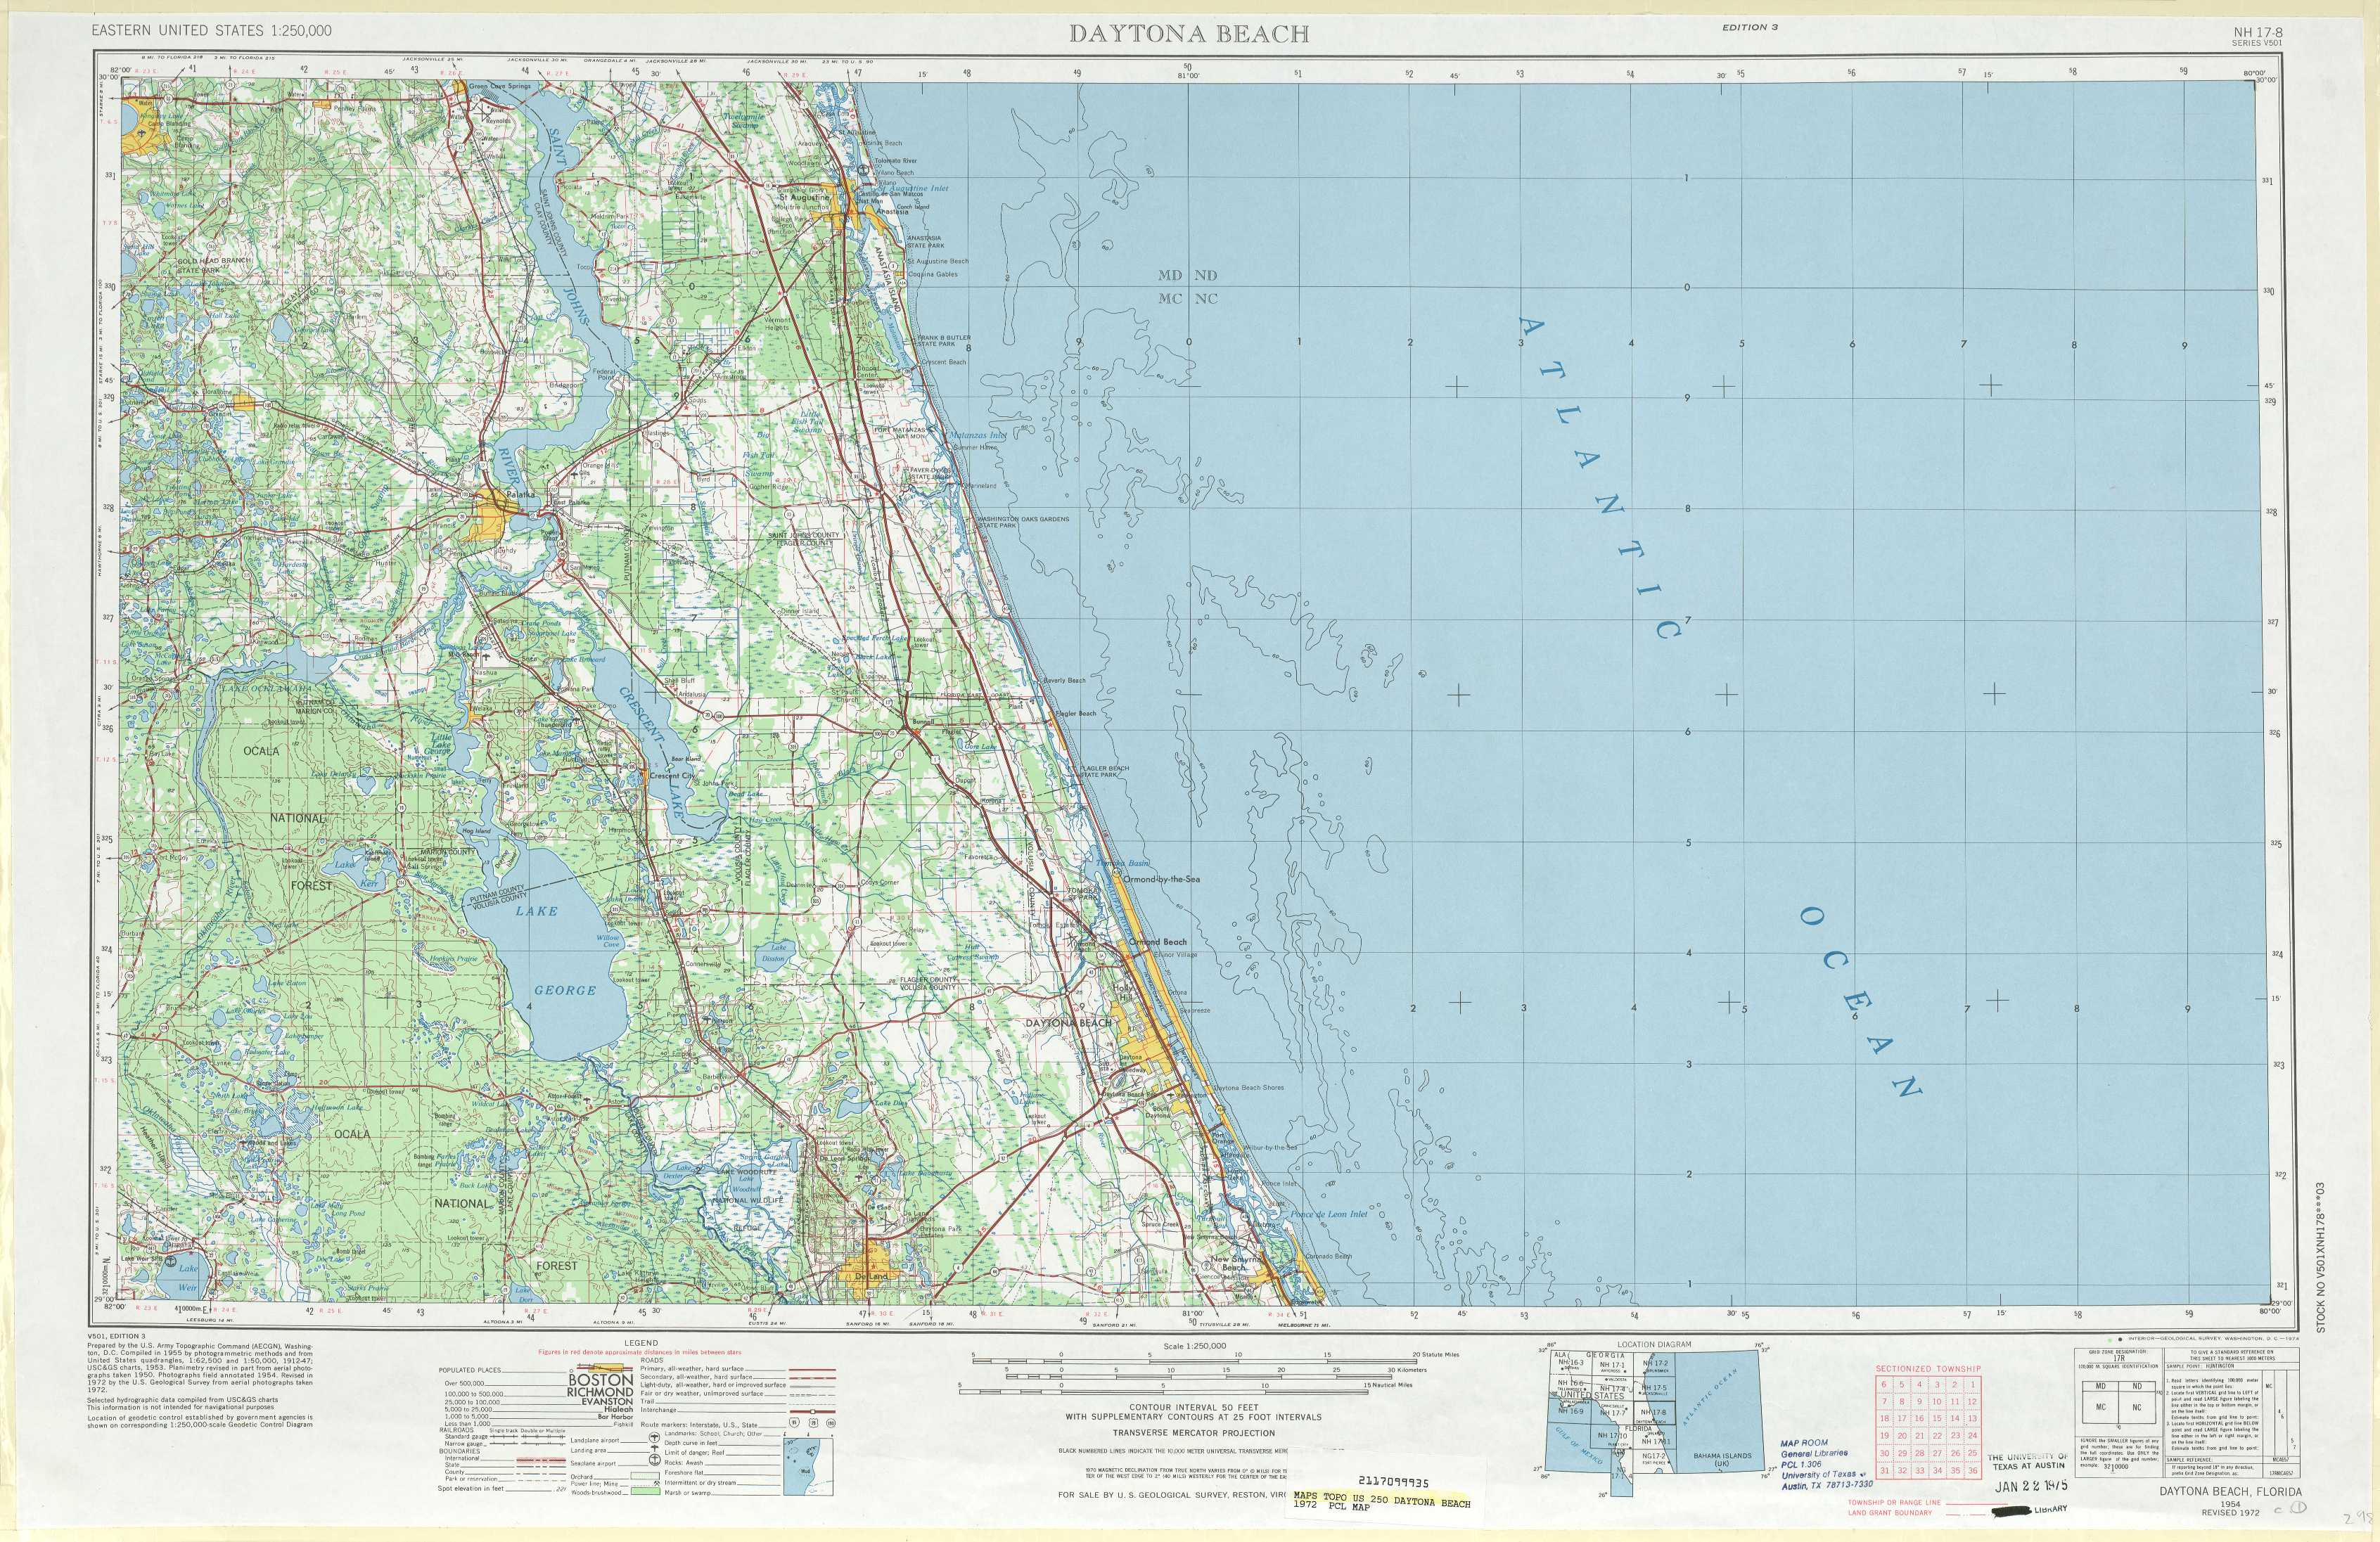 Map Of Florida Showing Daytona Beach.Daytona Beach Topographic Maps Fl Usgs Topo Quad 29080a1 At 1